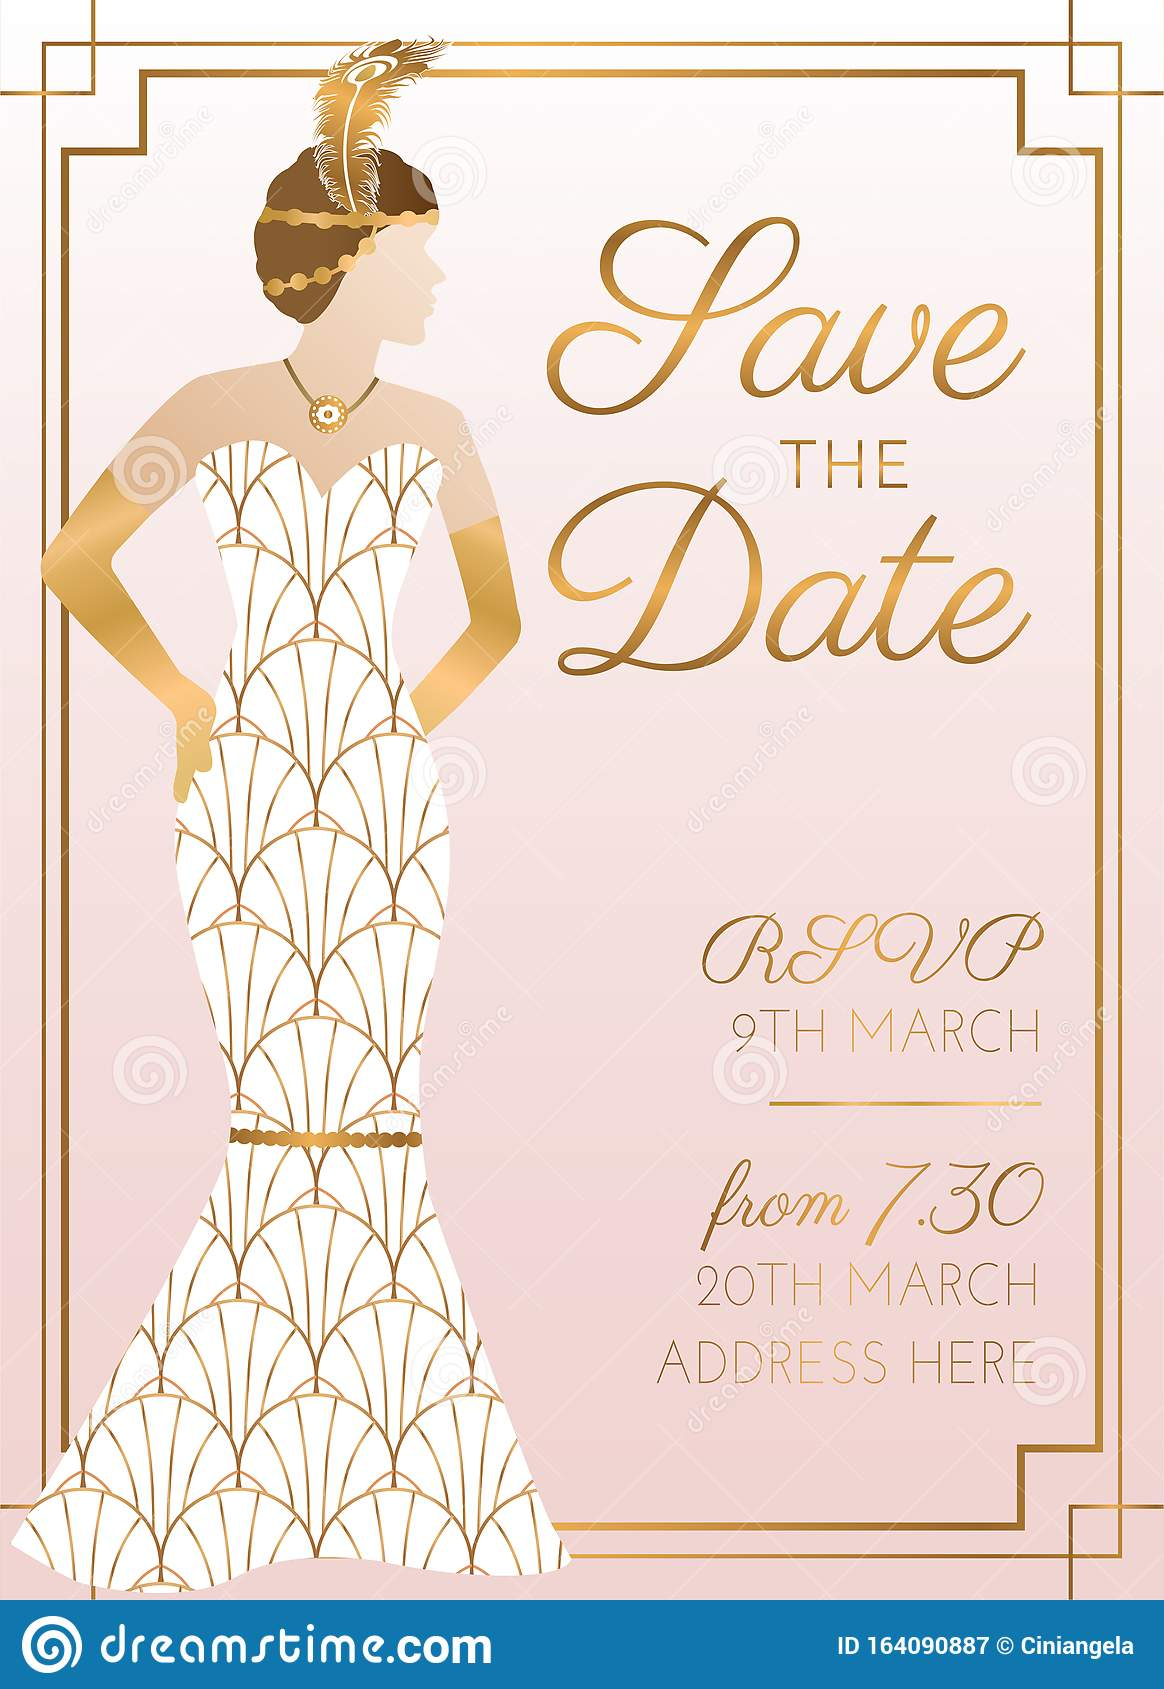 It's a document of ne. Pink Save The Date Wedding Invitation Design With Woman In Bridal Wedding Dress Stock Vector Illustration Of Nice Feather 164090887